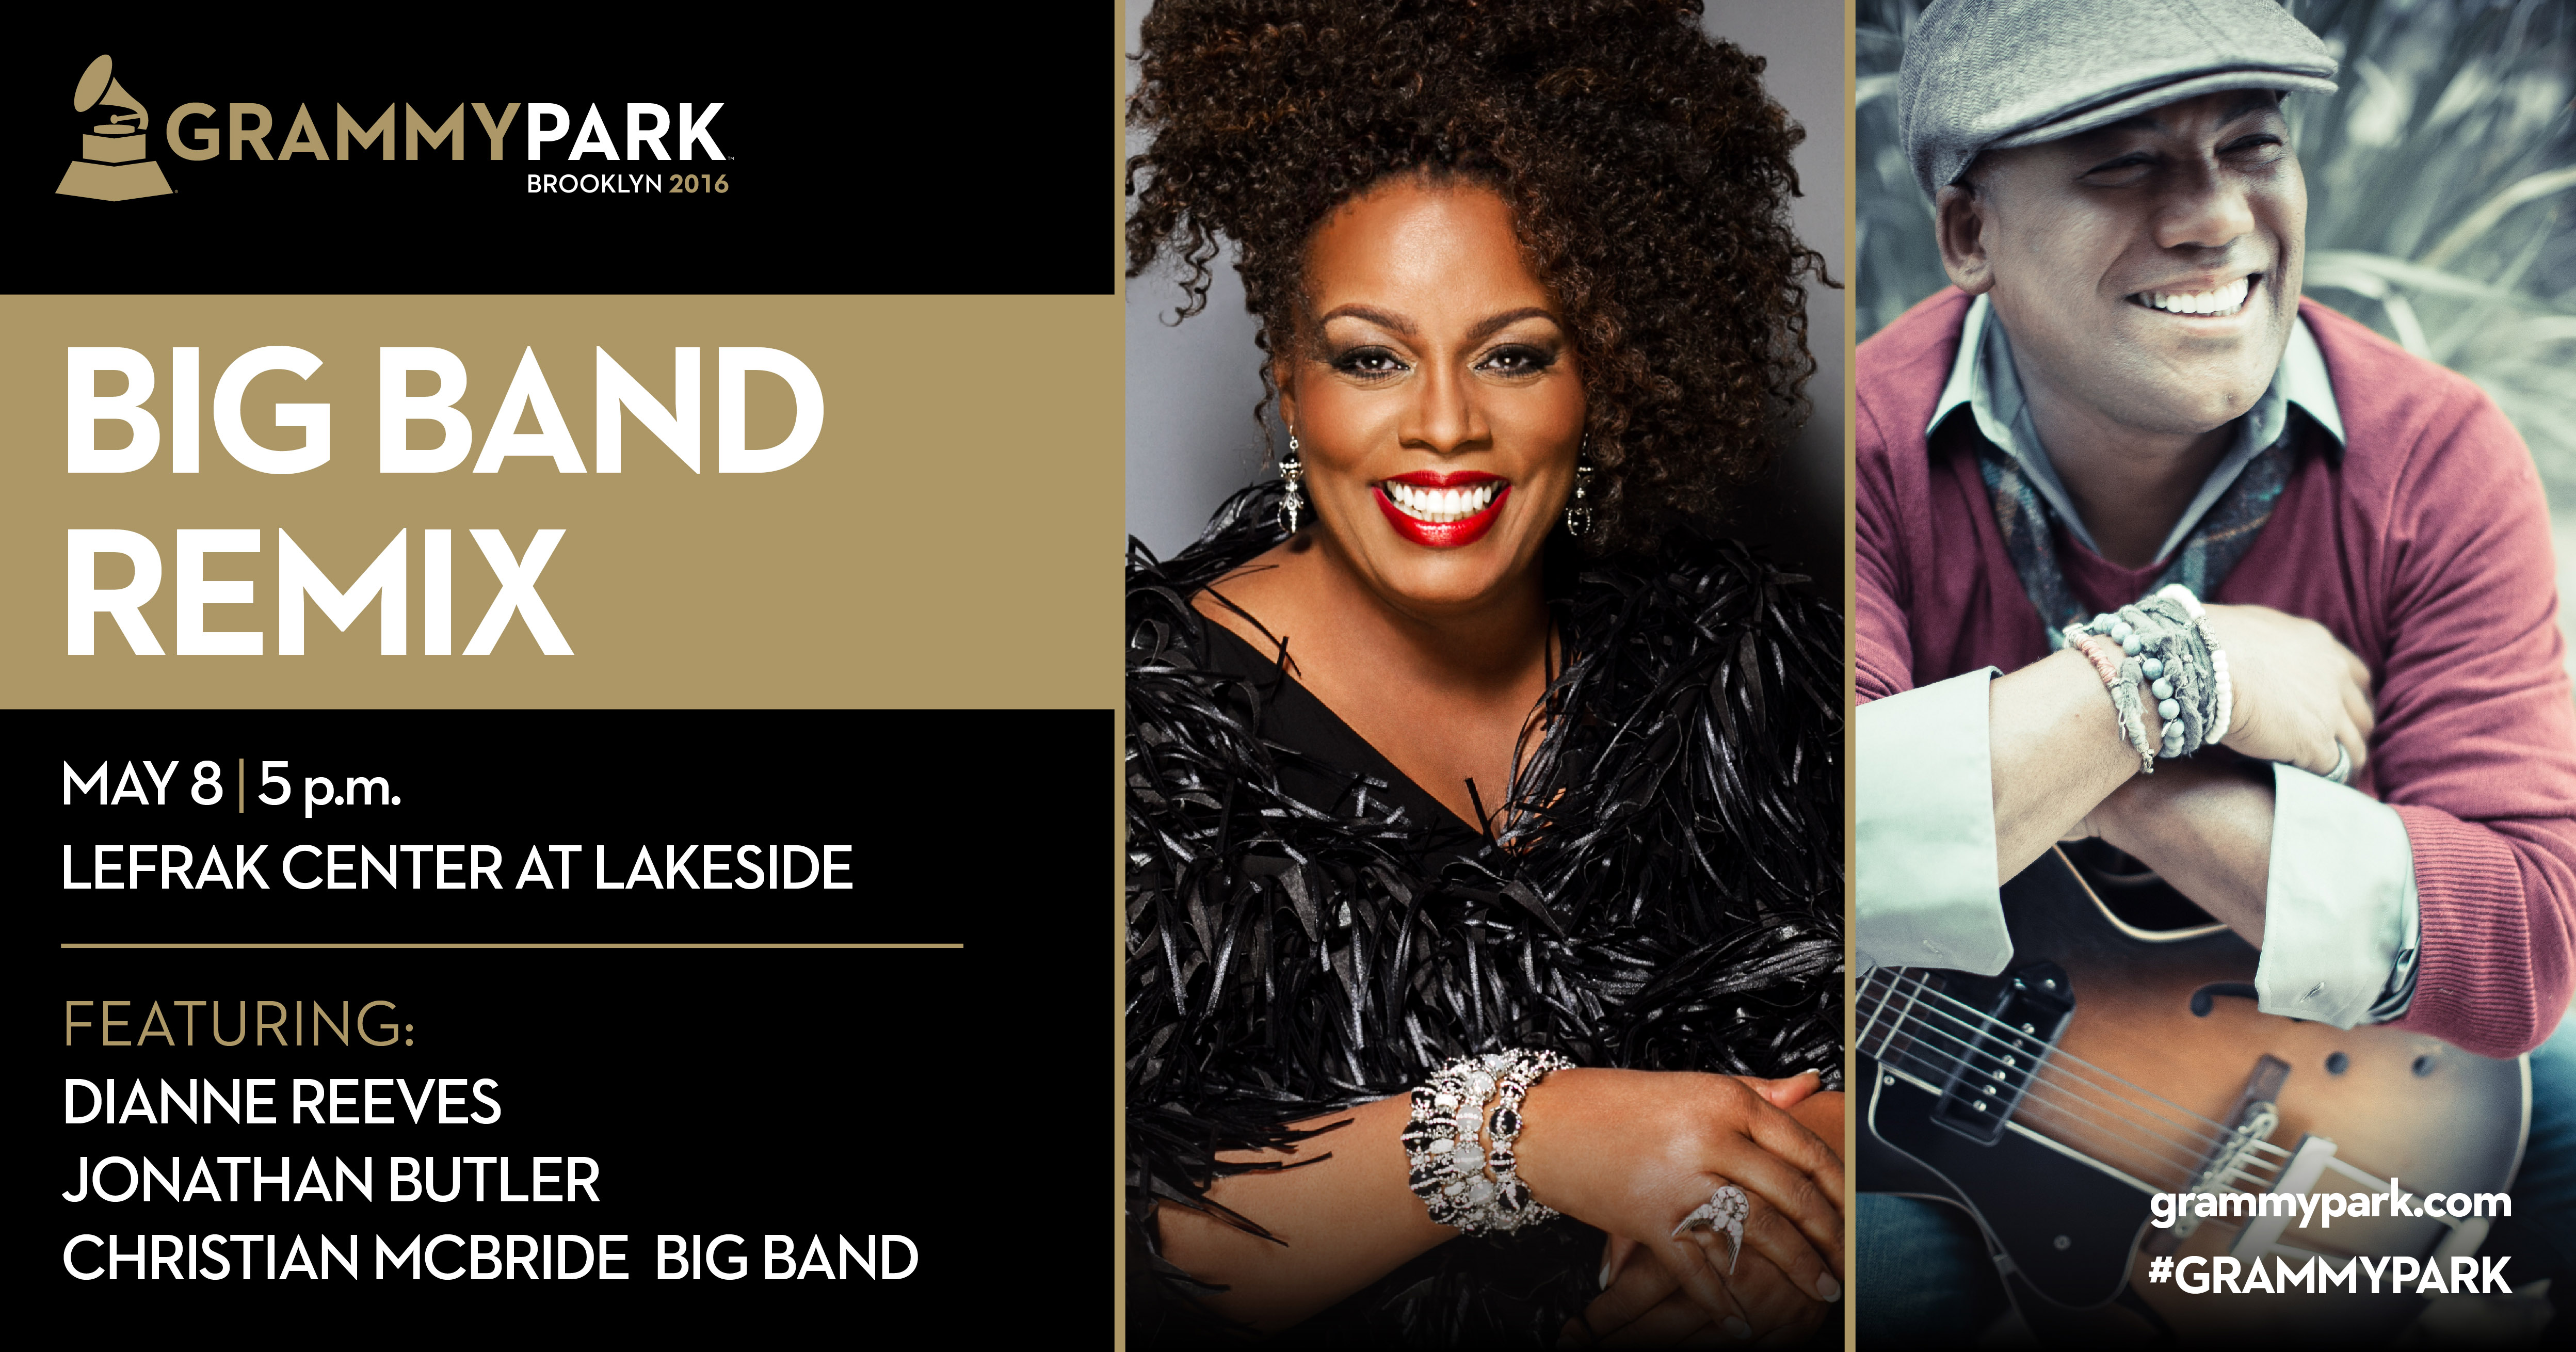 GRAMMY Park Presents Big Band Remix at Lakeside, featuring Dianne Reeves